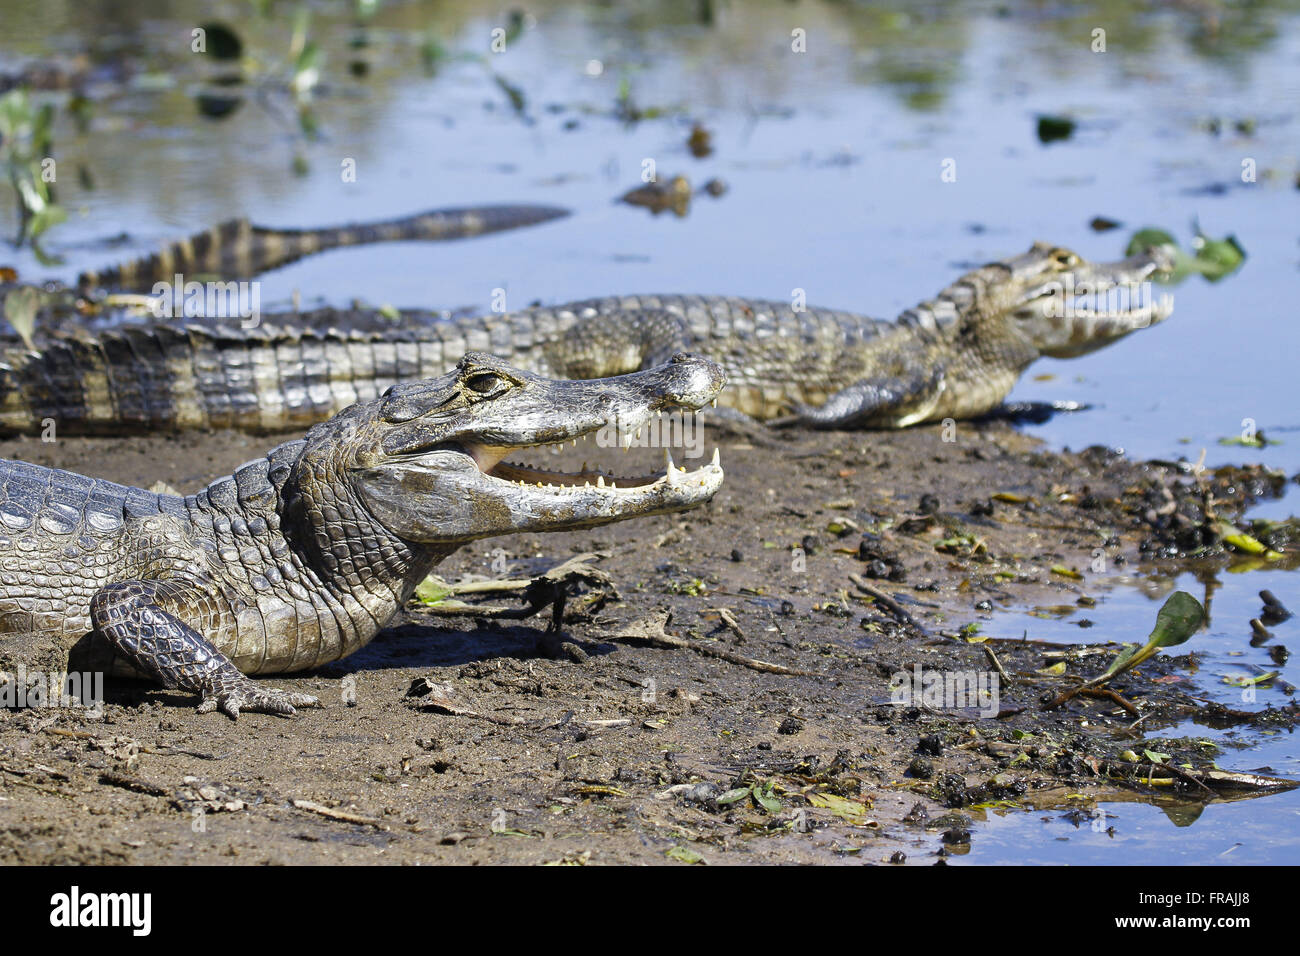 Alligators in the marsh lakefront - Caiman crocodilus yacare - Stock Image